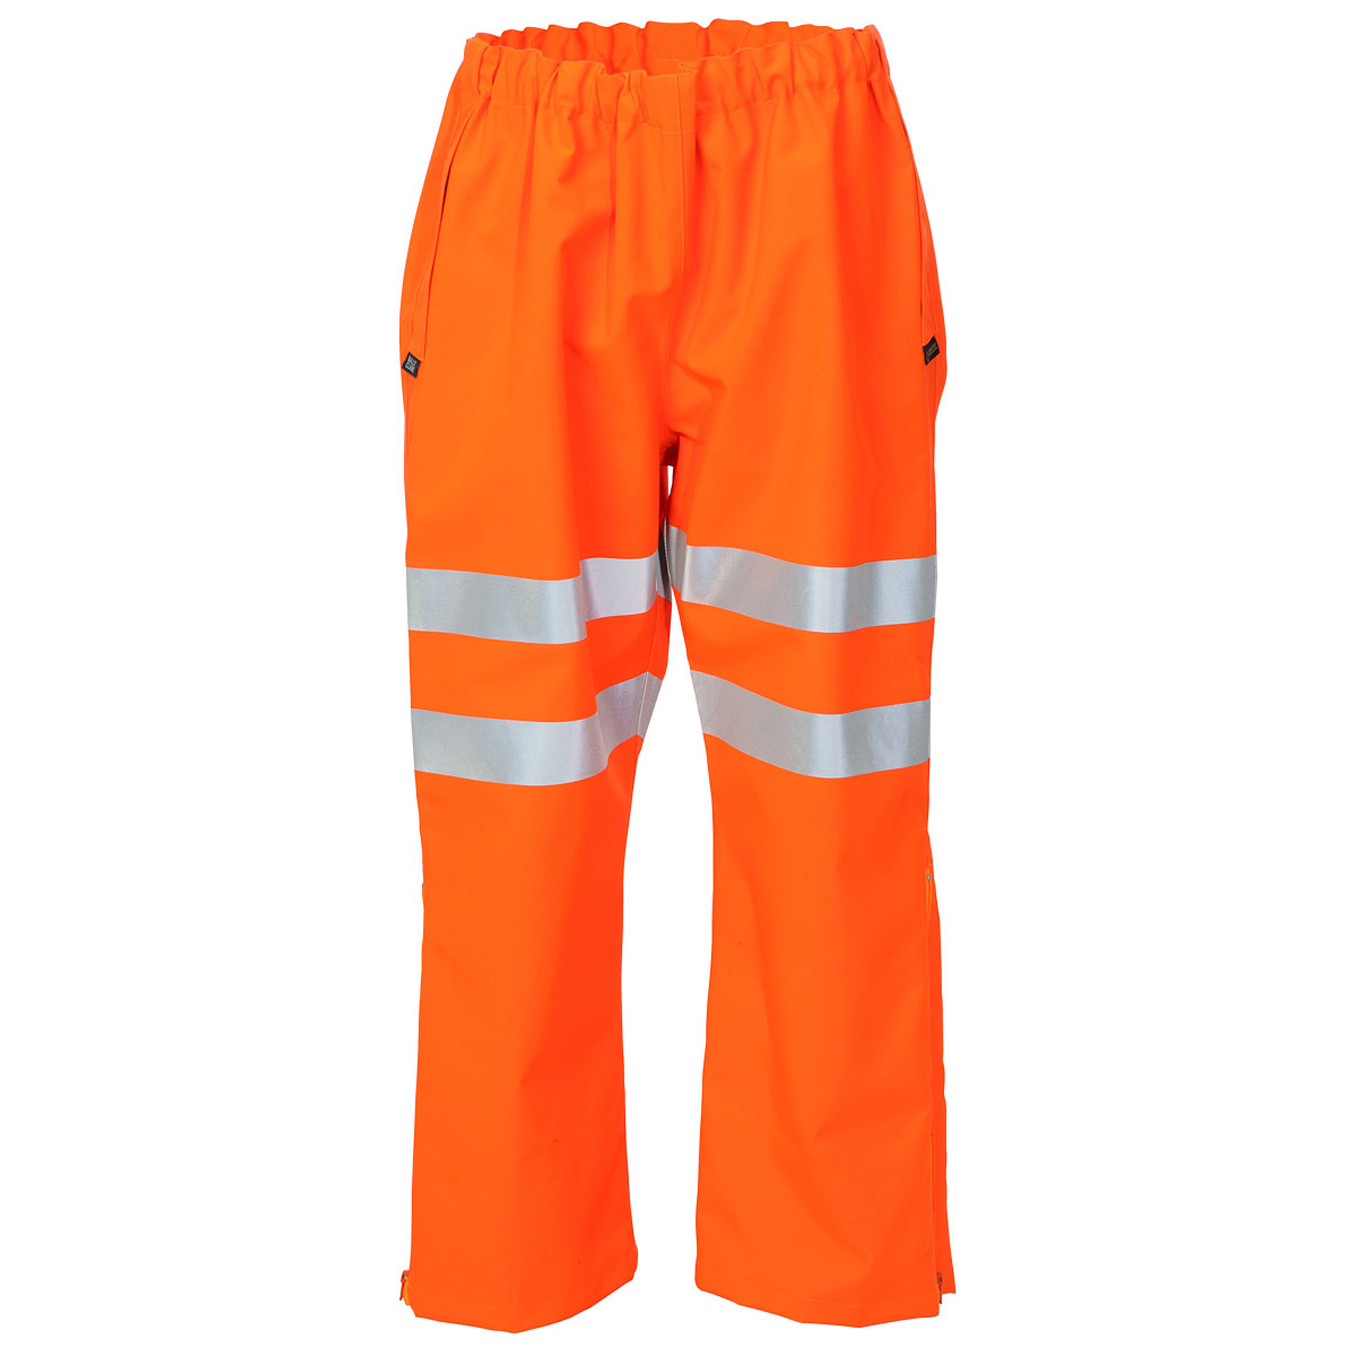 Weatherproof B-Seen Gore-Tex Over Trousers Foul Weather L Orange Ref GTHV160ORL *Up to 3 Day Leadtime*